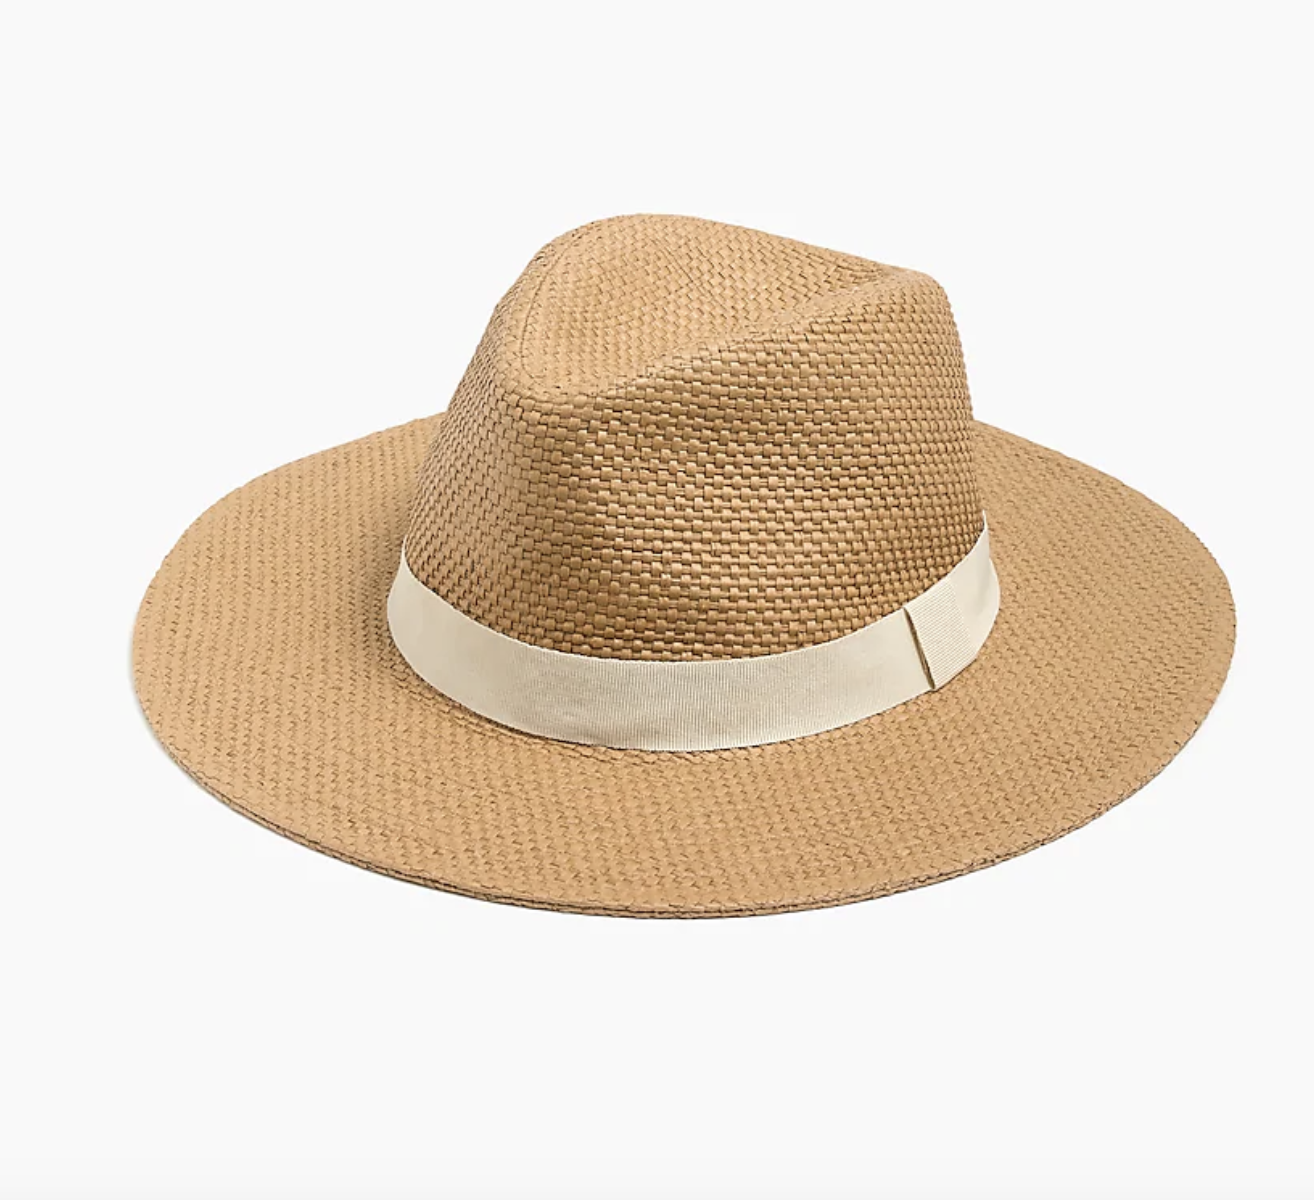 A paper straw hat with a cream band against a plain background